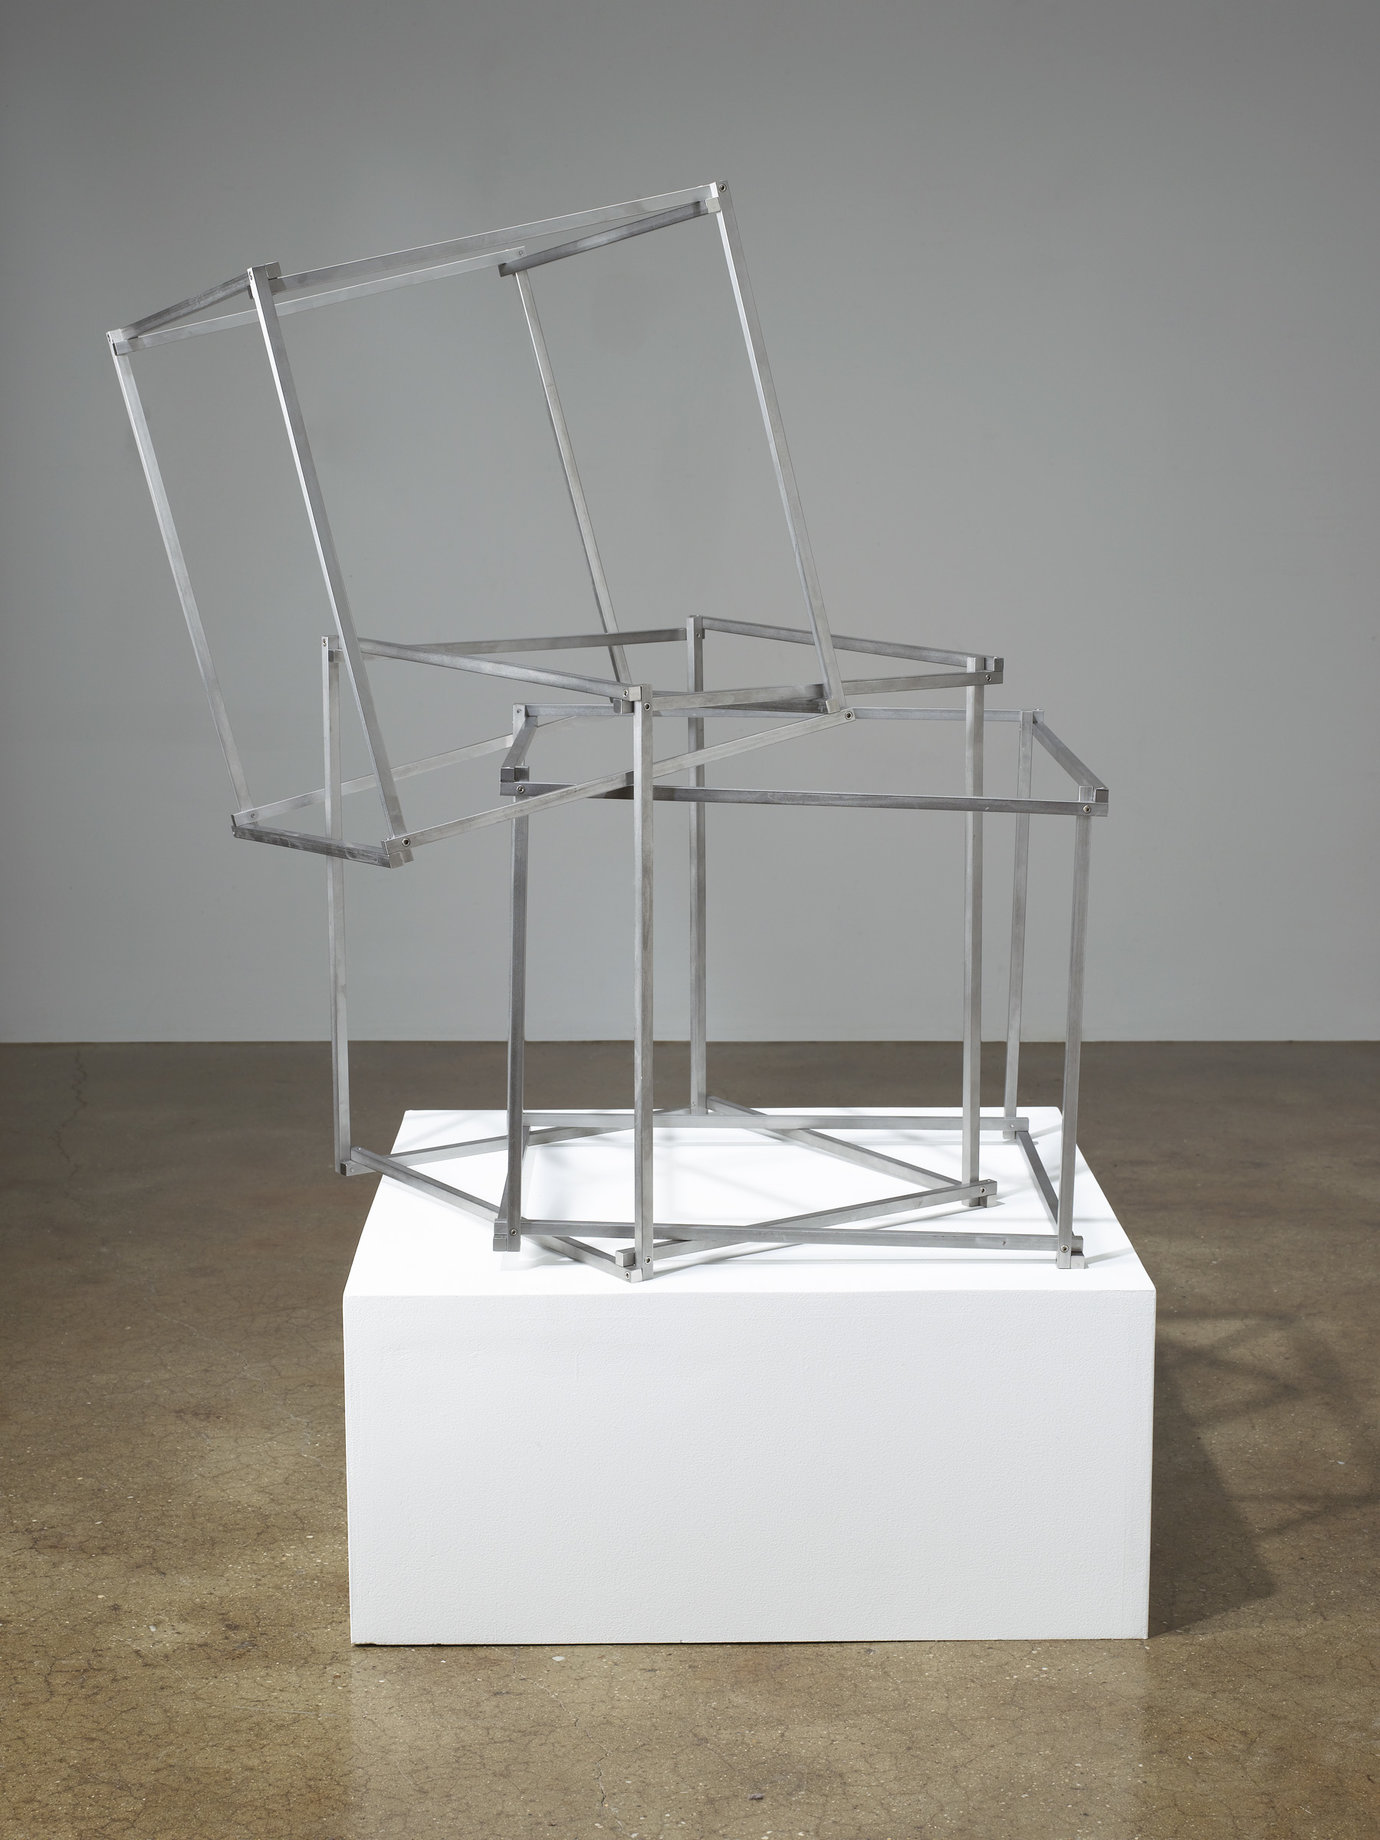 ", 2008. Stainless steel, overall installation dimensions variable&#x000A;16"" x 14"" x 14"" (40.6 cm x 35.6 cm x 35.6 cm), 3 frames, each."